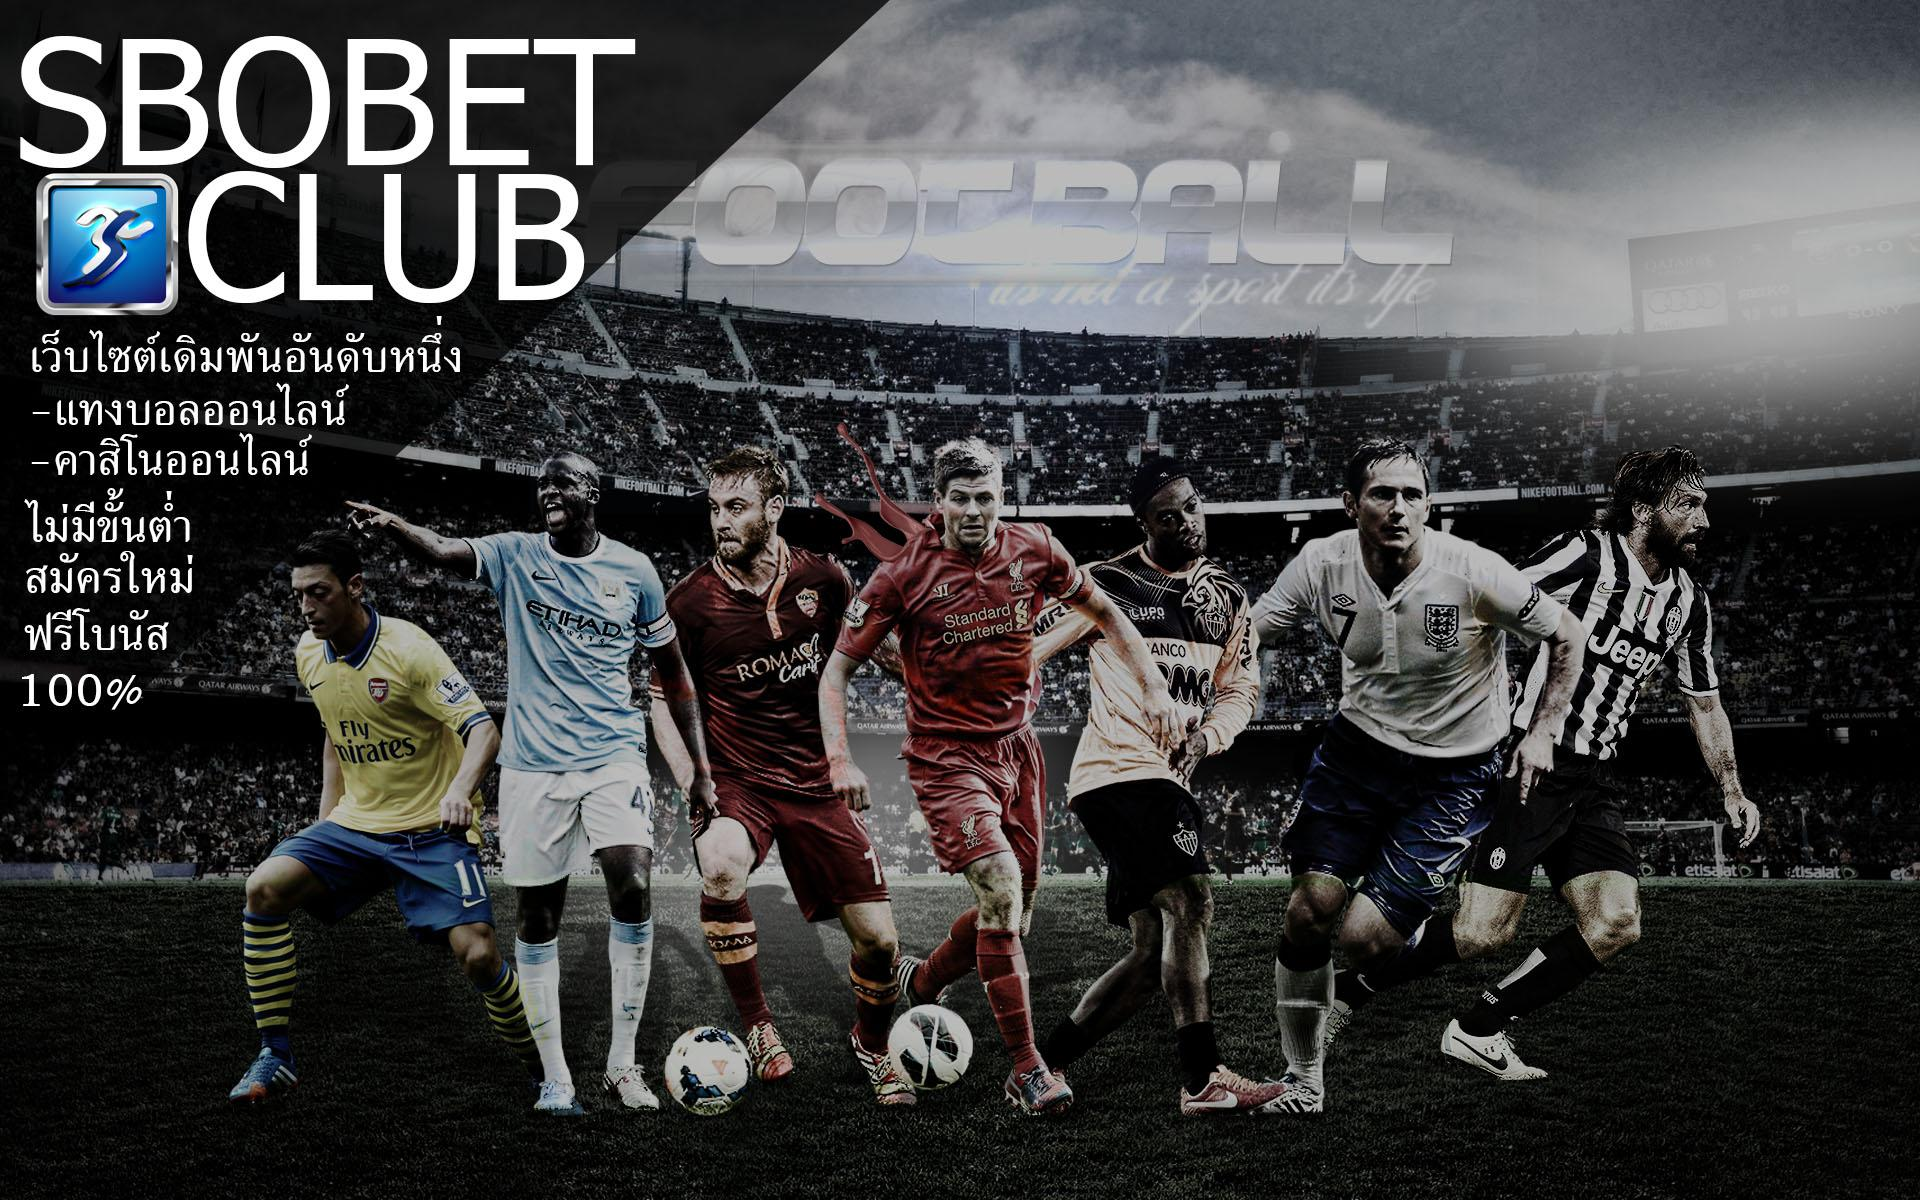 sbobet club No minimum